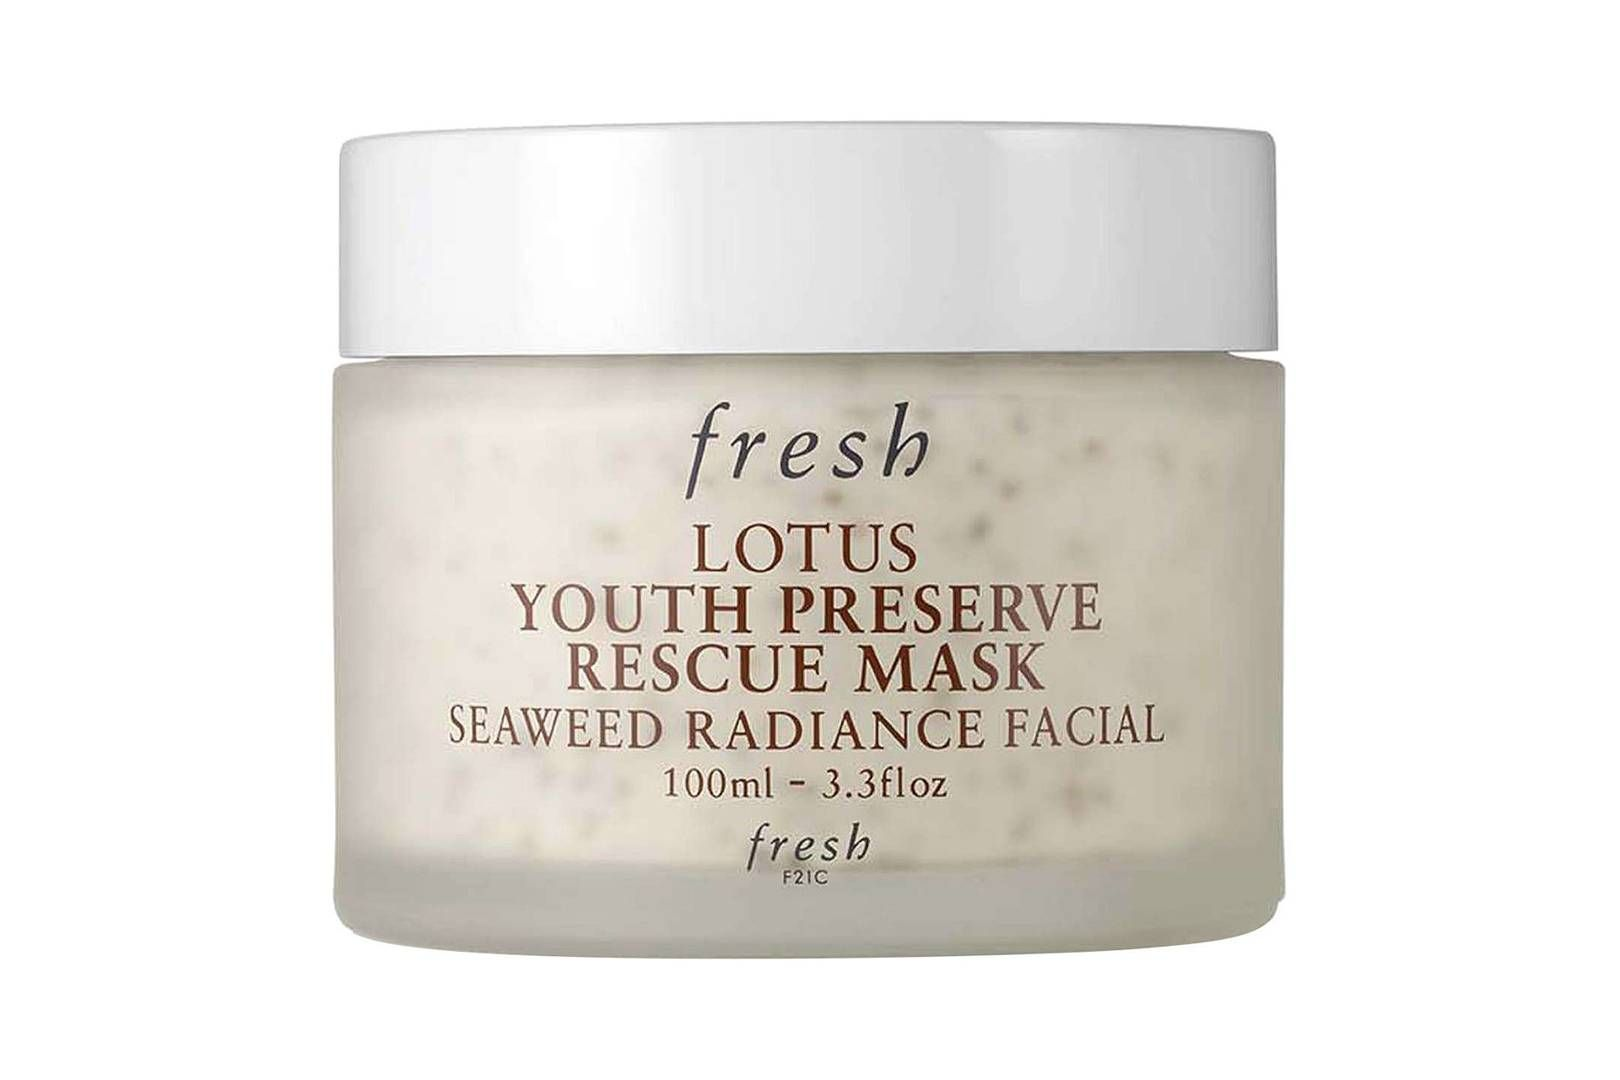 These are the best face masks for some serious skin